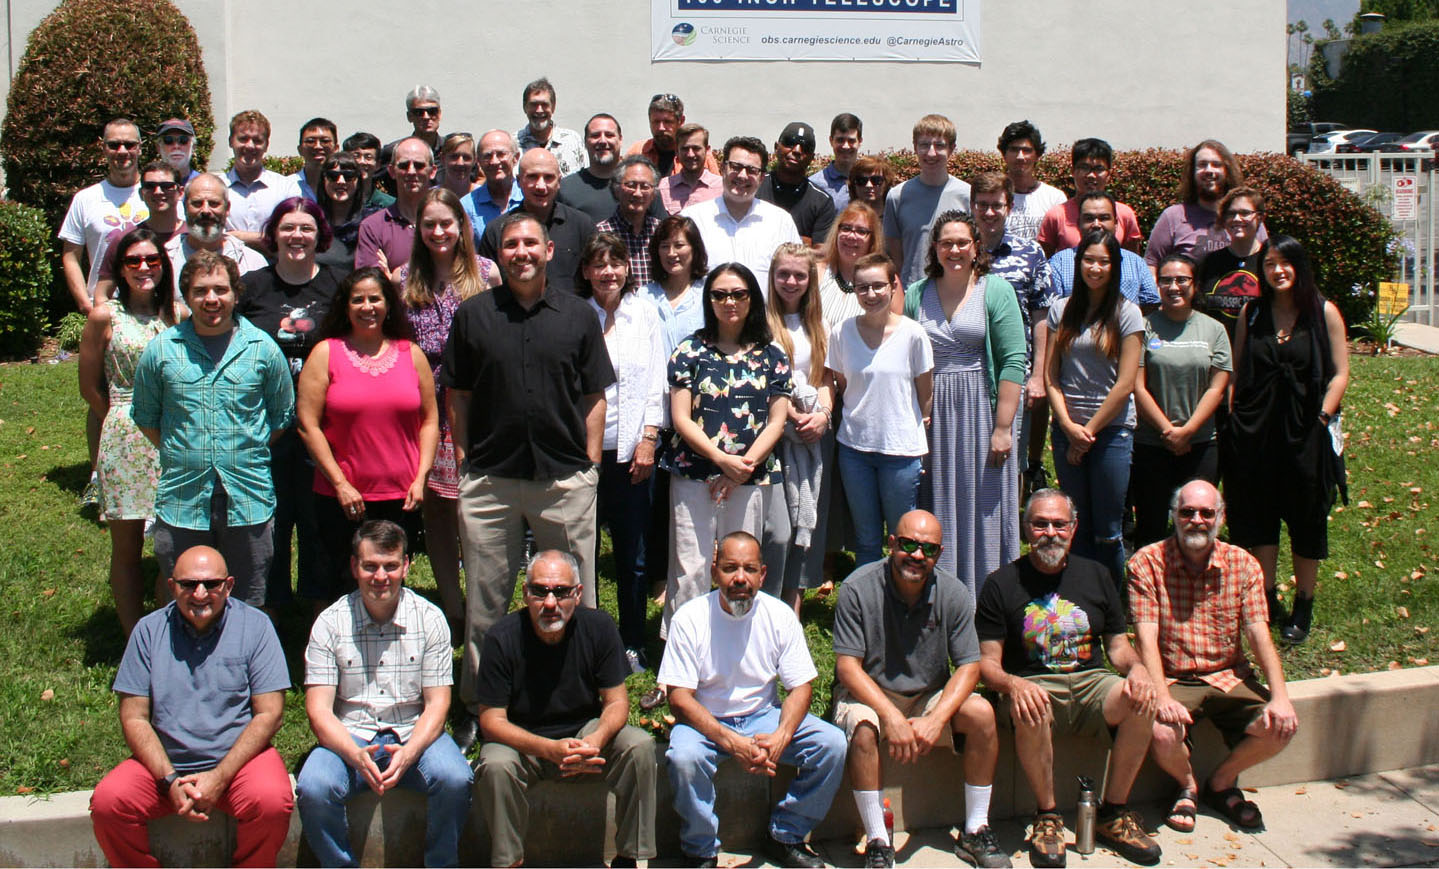 Carnegie Observatories 2018 staff photo